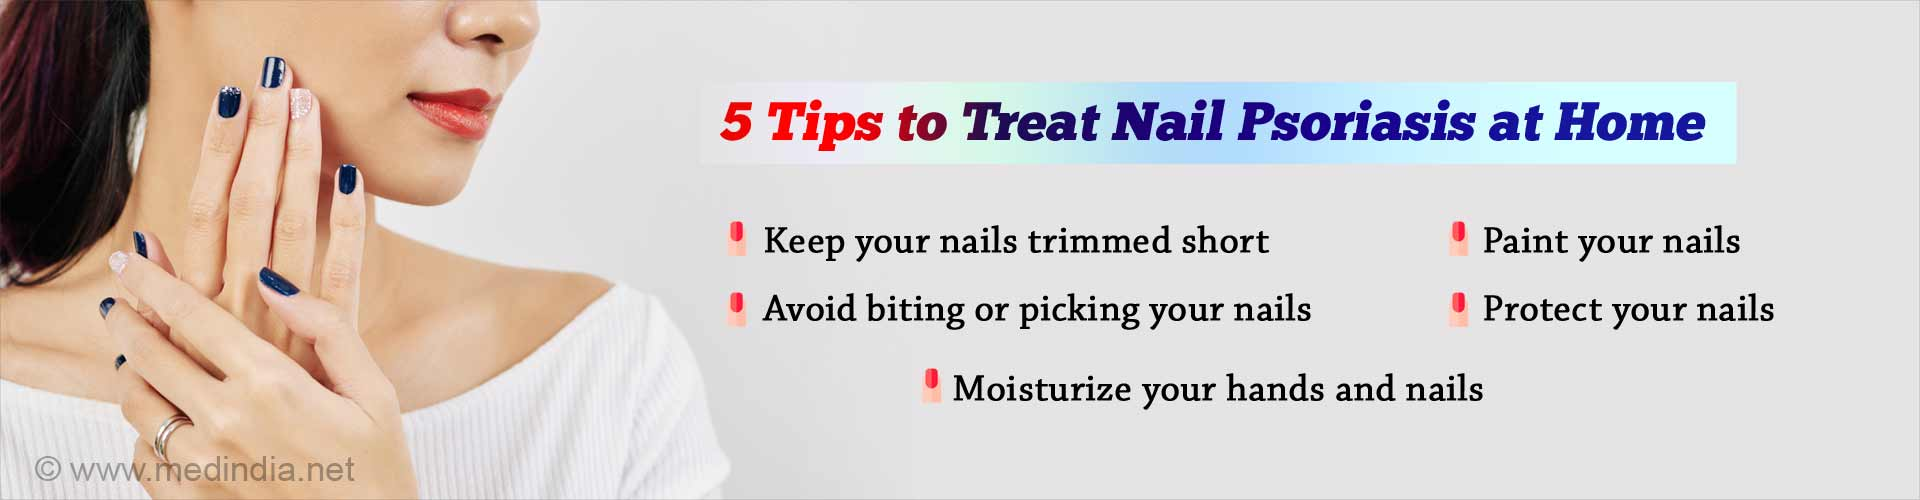 Nail Psoriasis: 5 Simple Nail-care Tips Just for You